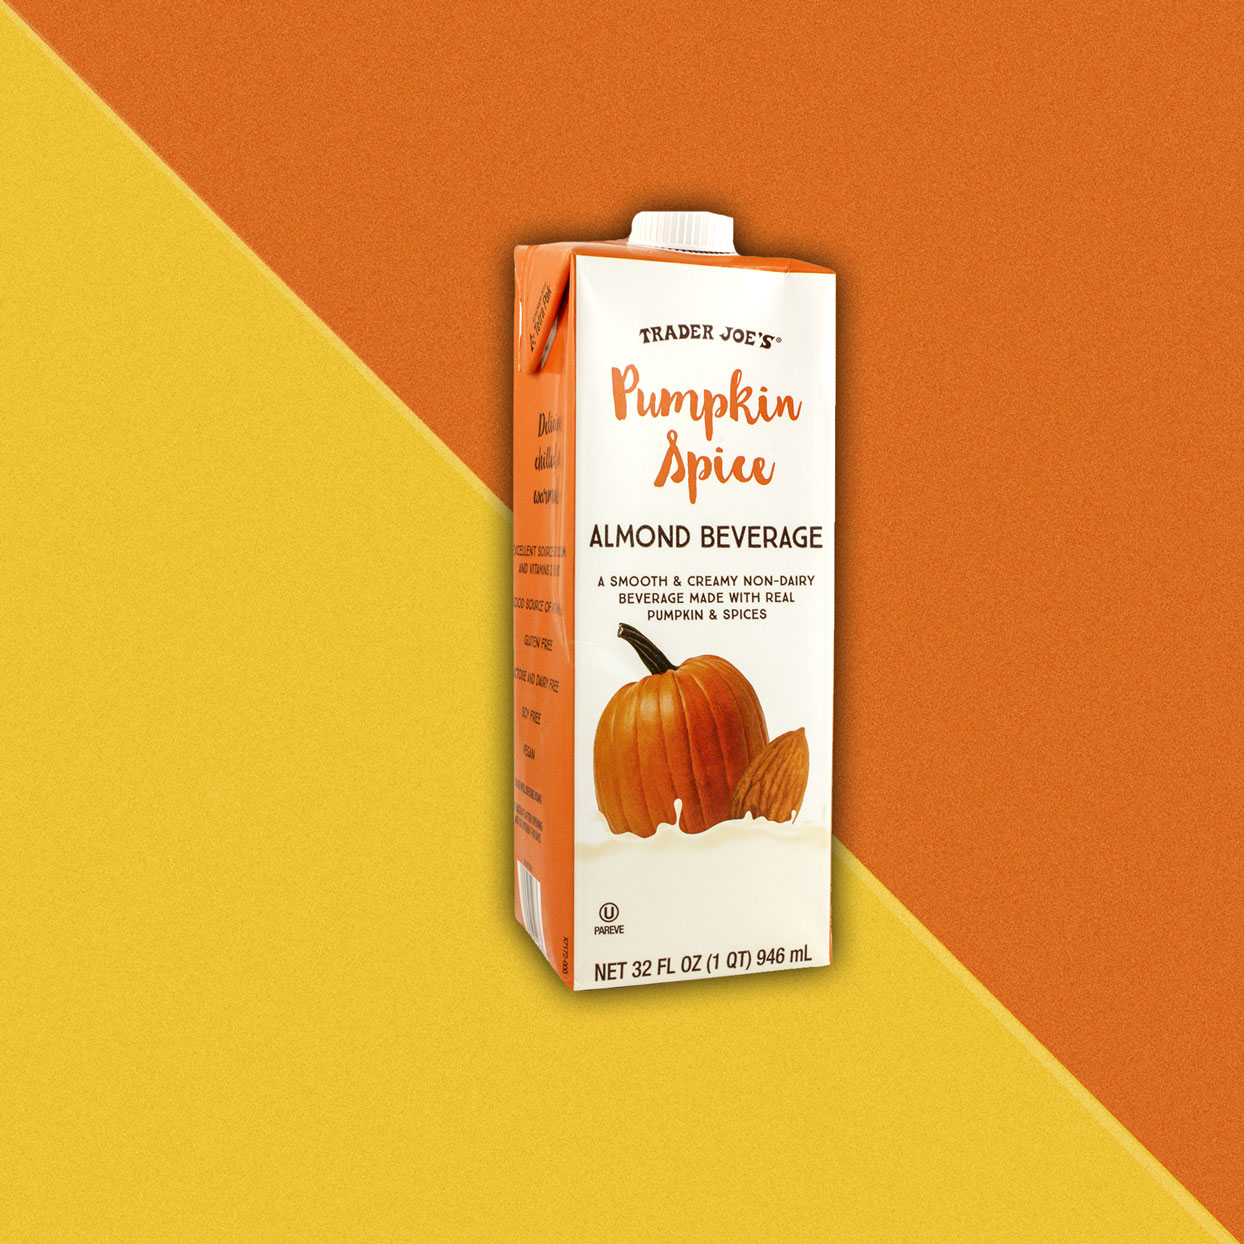 Pumpkin flavored almond beverage